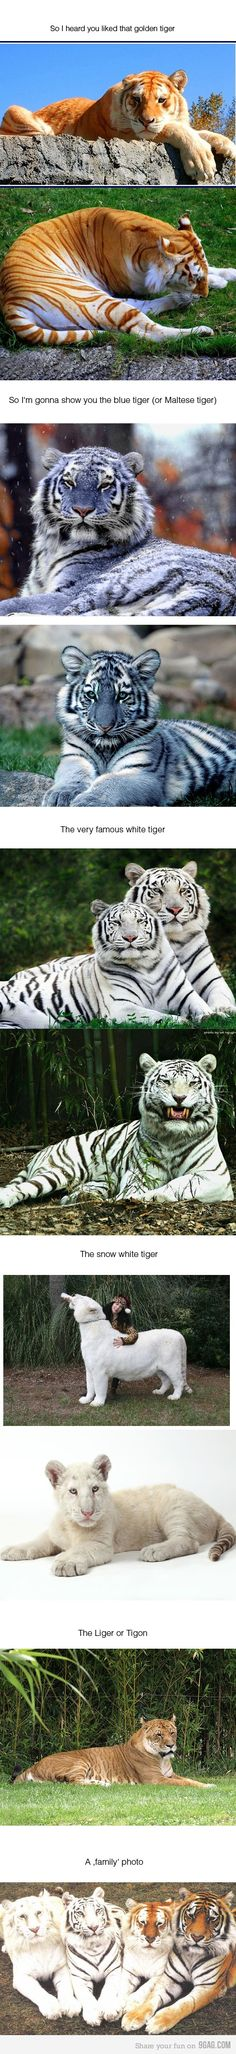 Blue Tiger, Snow white tiger, golden tiger, so cool